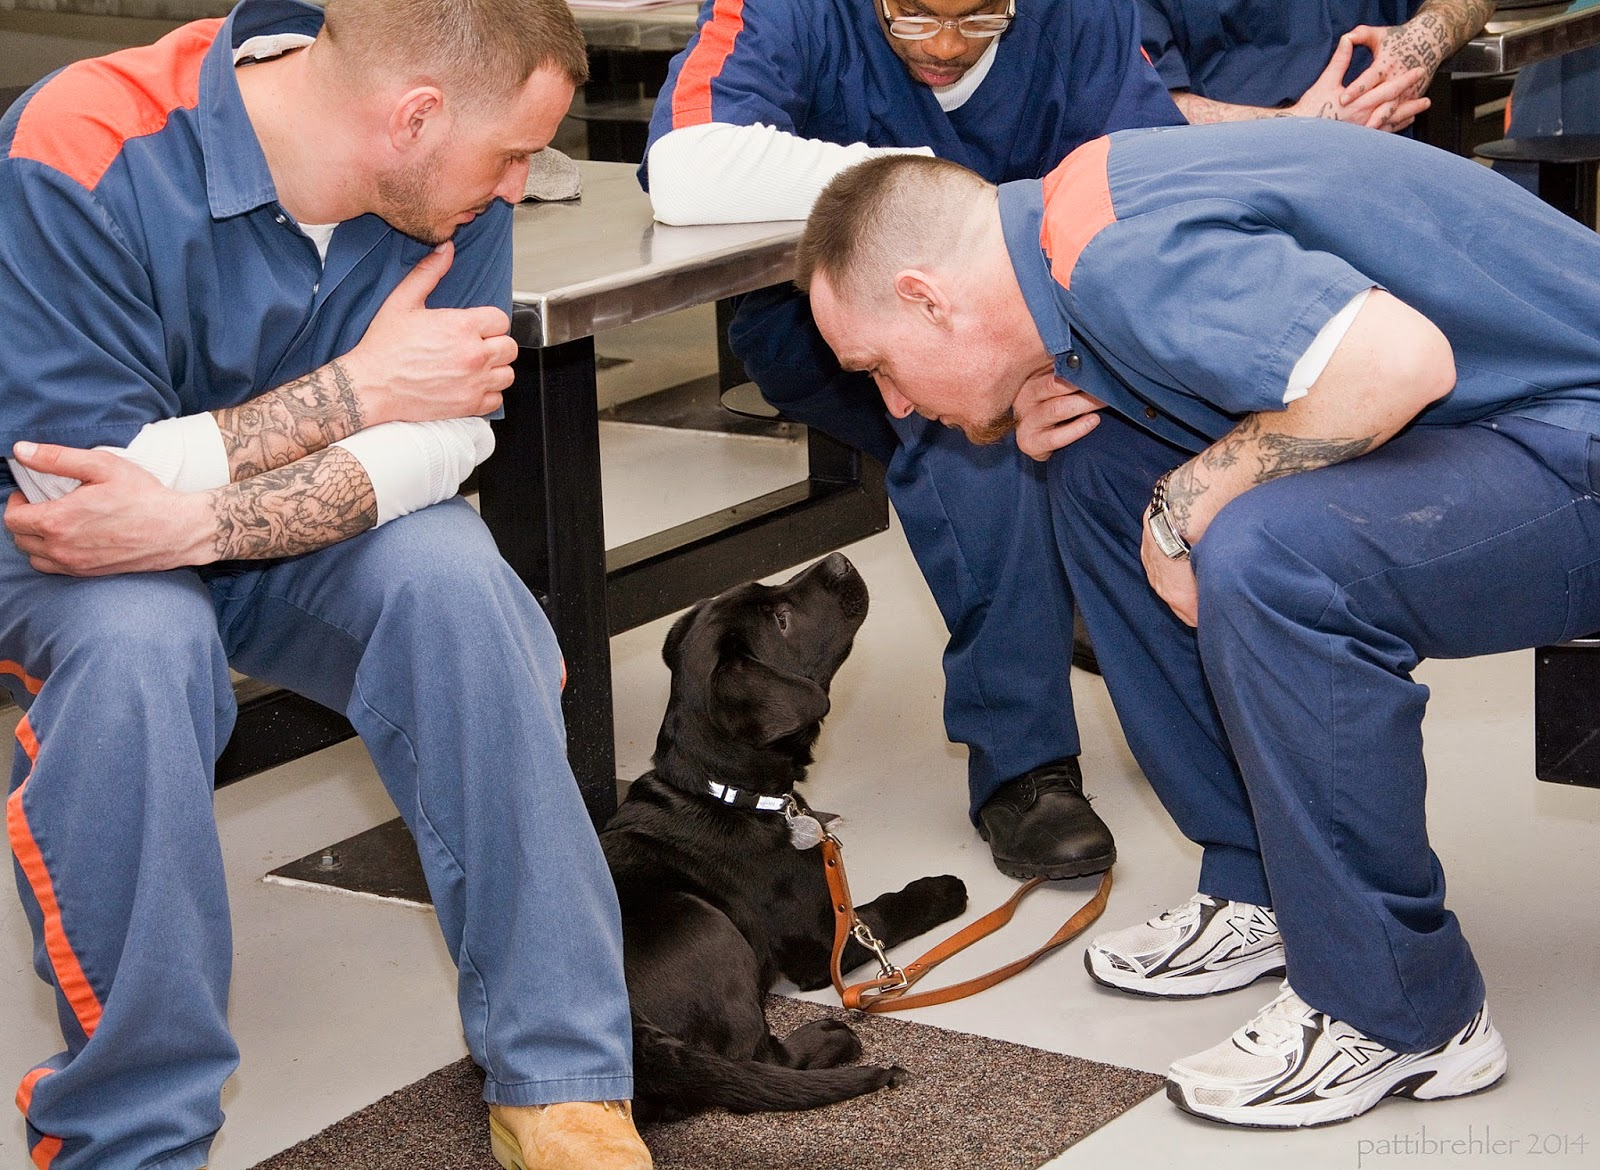 A black lab puppy is lying half on a brown carpet square and half on a painted cement floor. He is facing away from the camer and lookng up at a man who is sitting on the right side of the photo. The man is bending over and looking at the puppy, his left forearm is resting on his left thigh. Two other men are sitting at a lunch table on the left and behind the puppy. All three are wearing the prison blue uniforms and looking at the puppy. The man on the left has his arms folded acrss his legs. The man behind has his right foot on the puppy's leash.